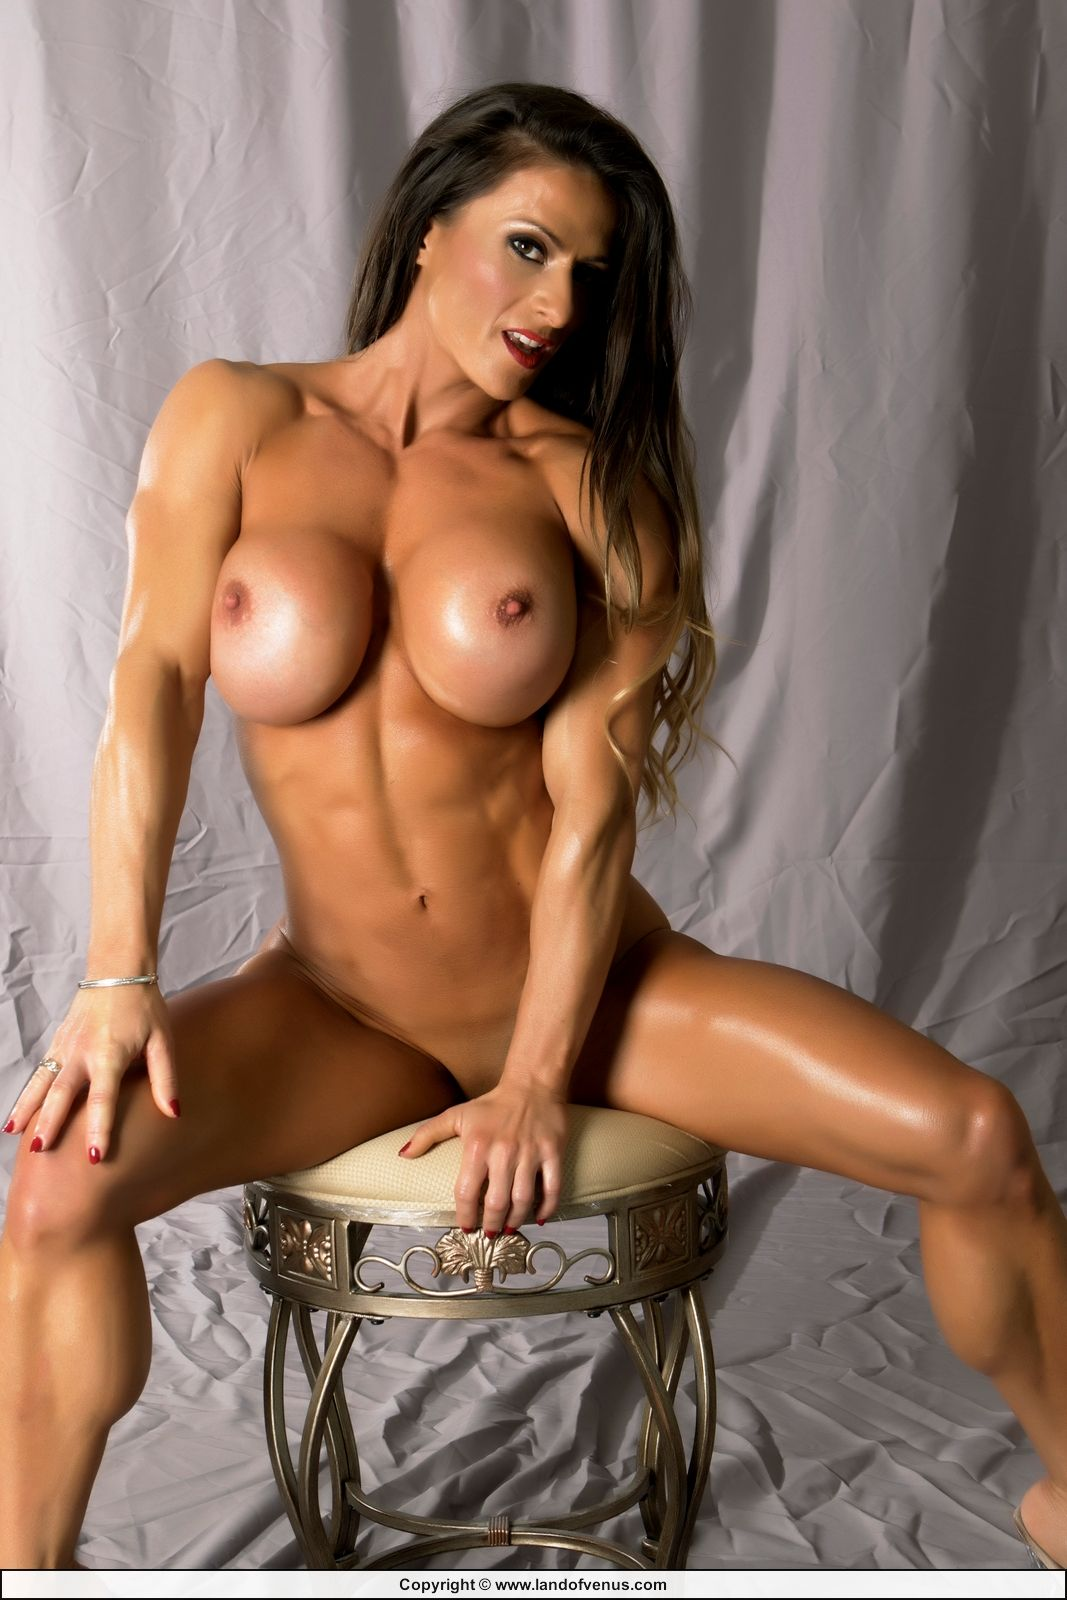 Nude-Fitness-Babes More New Pics Of Ifbb Pro Figure -7443